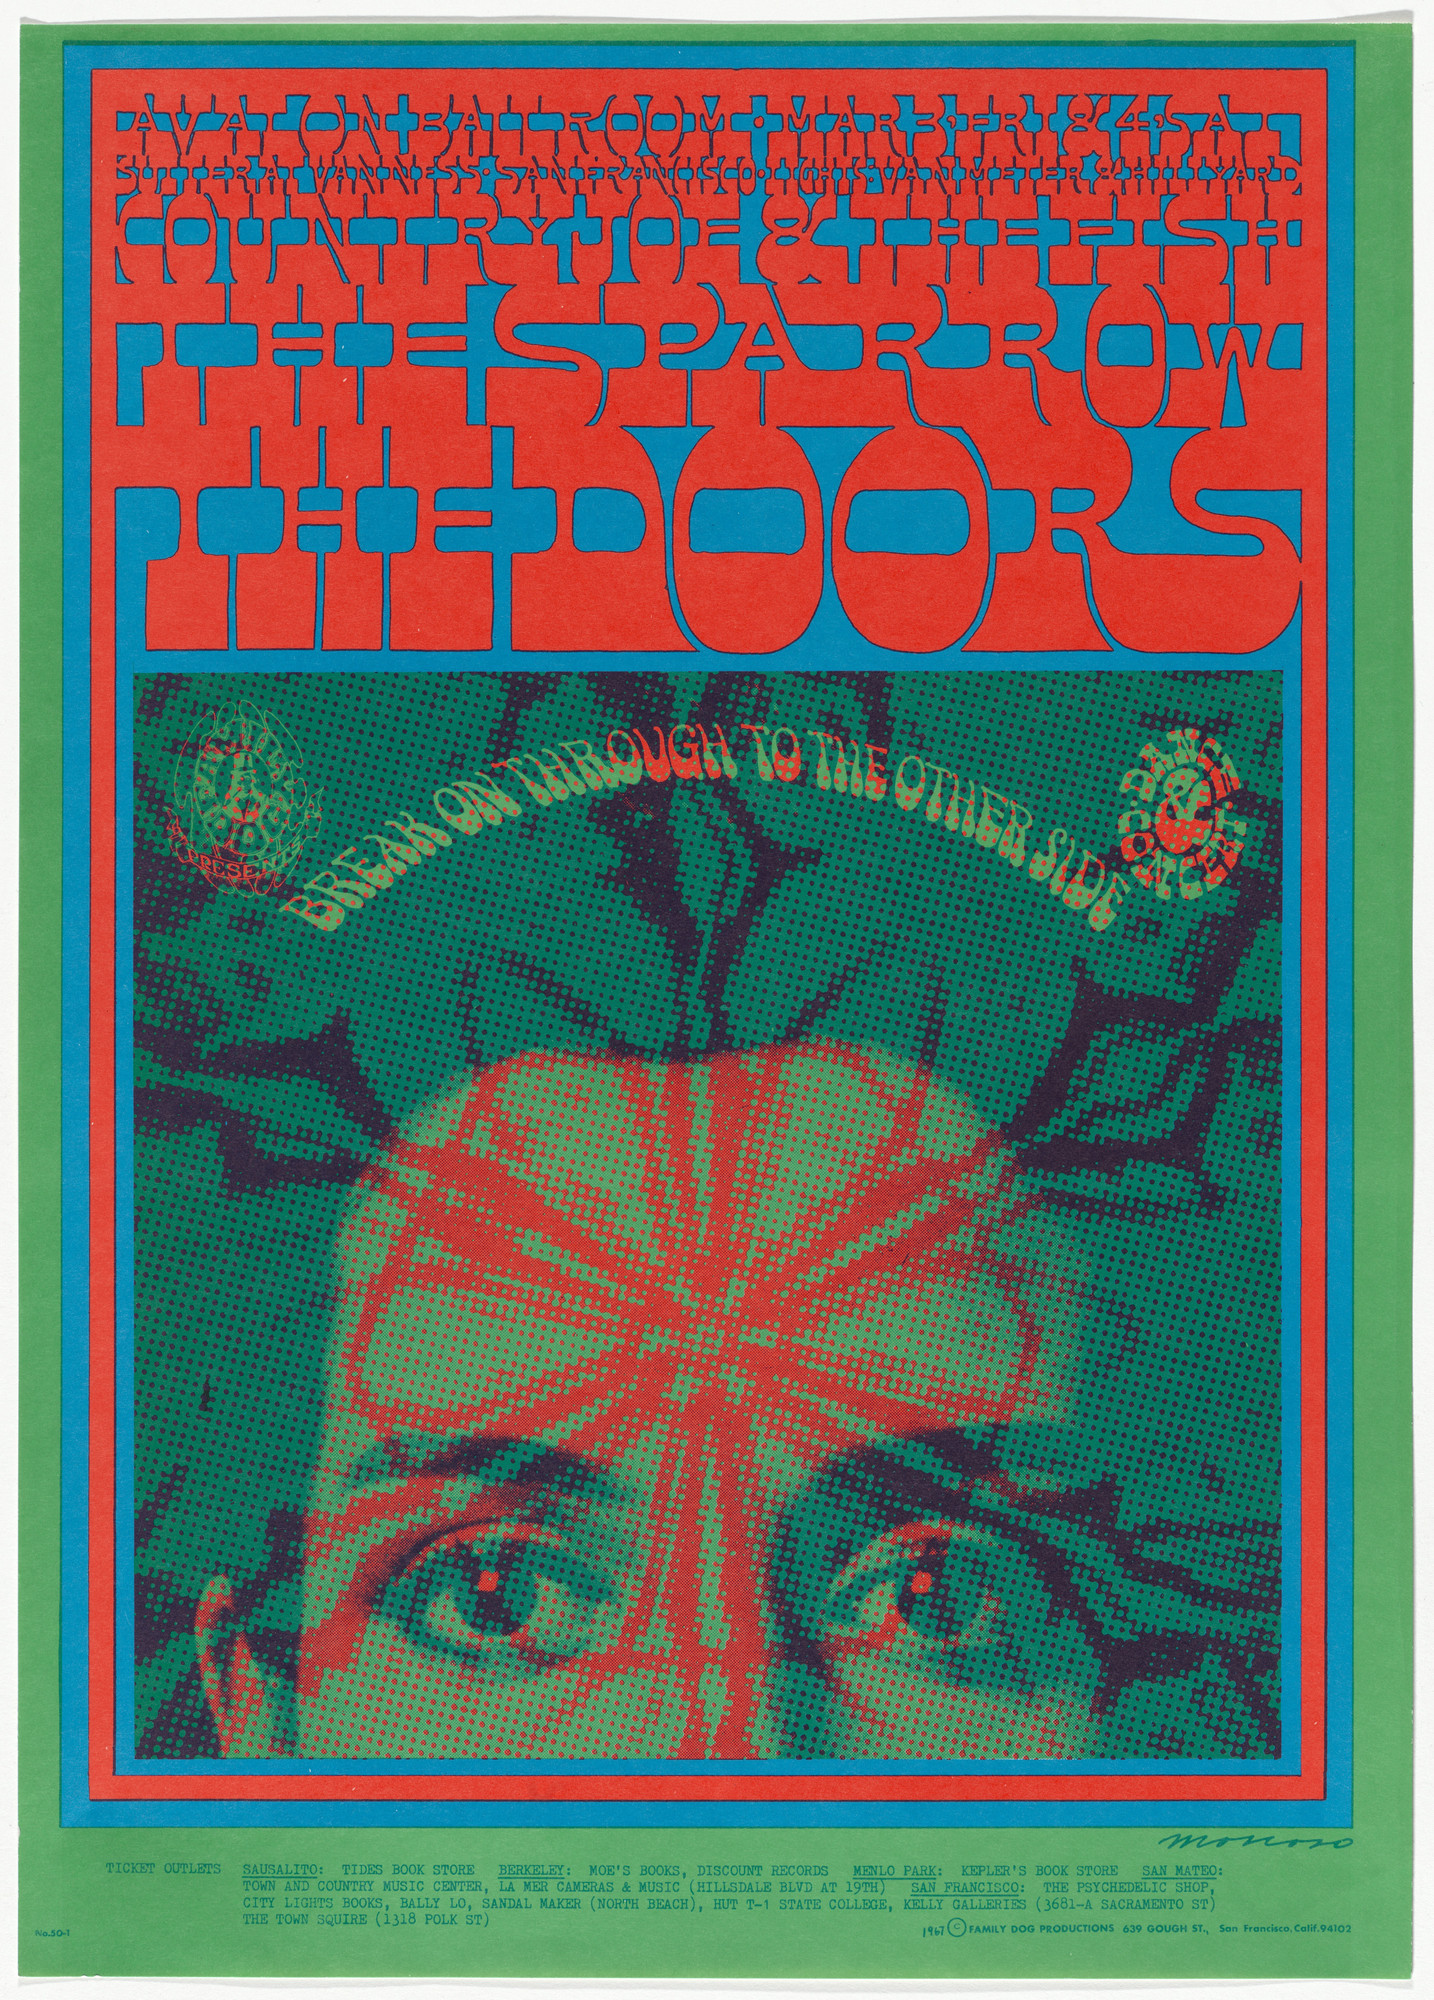 Victor Moscoso. The Doors, Sparrow, Country Joe and the Fish. 1967